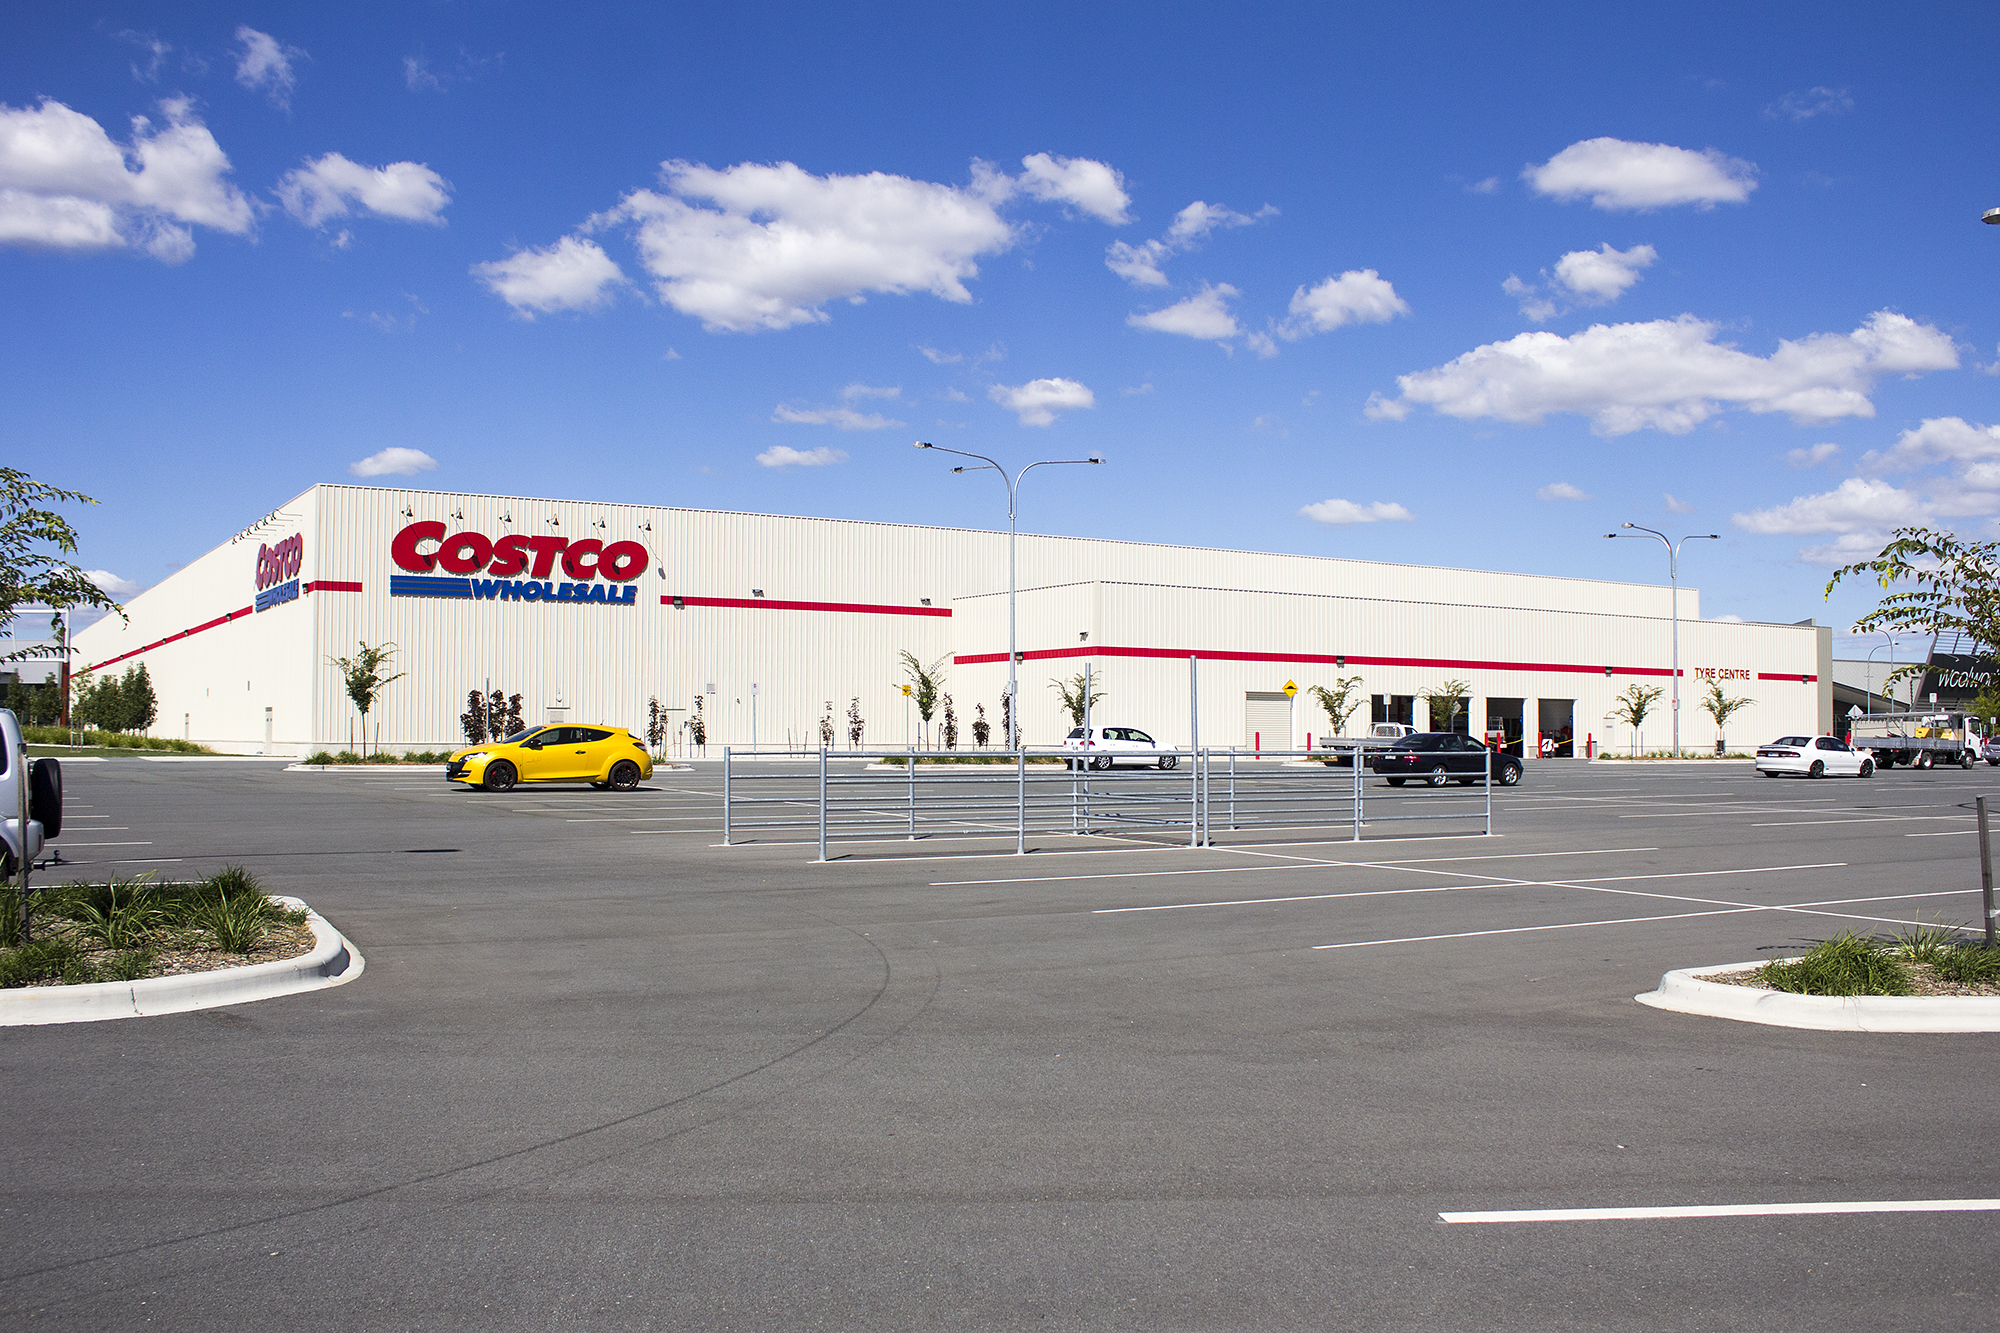 File:Costco at Majura Park in Canberra.jpg - Wikimedia Commons